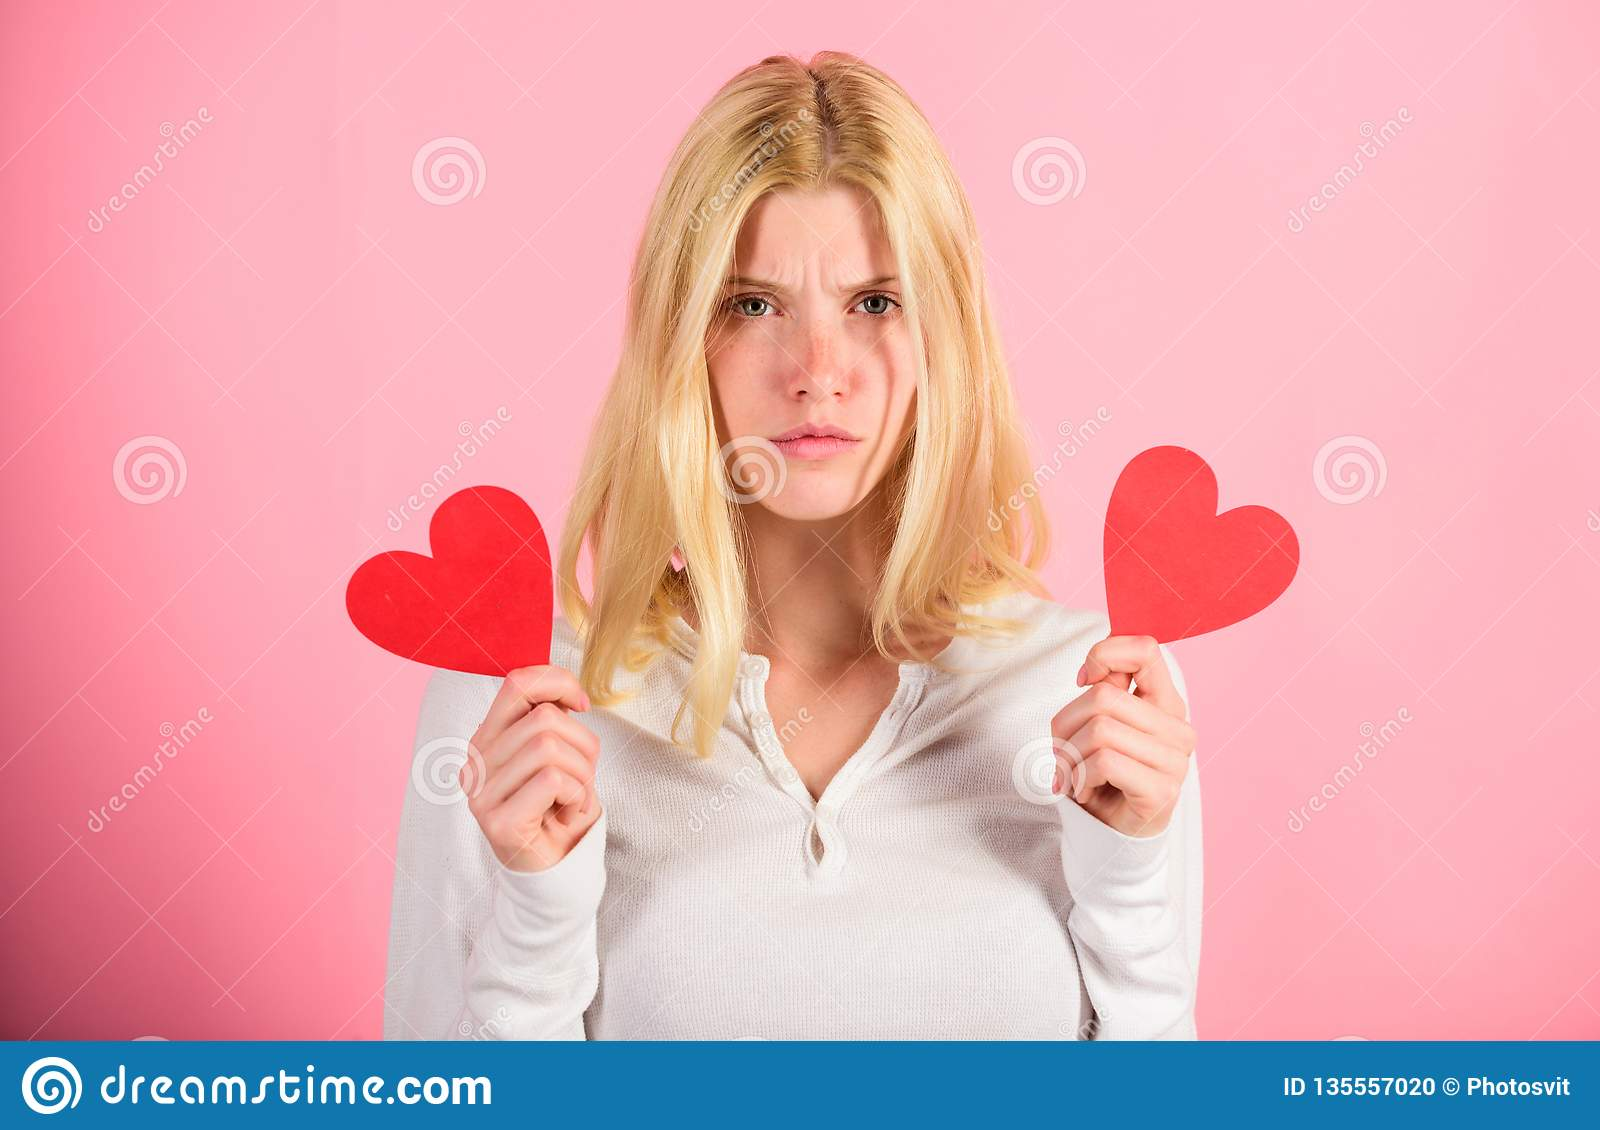 Girl hold heart love symbol over pink background. Valentines day concept. How to feel less lonely on valentines day